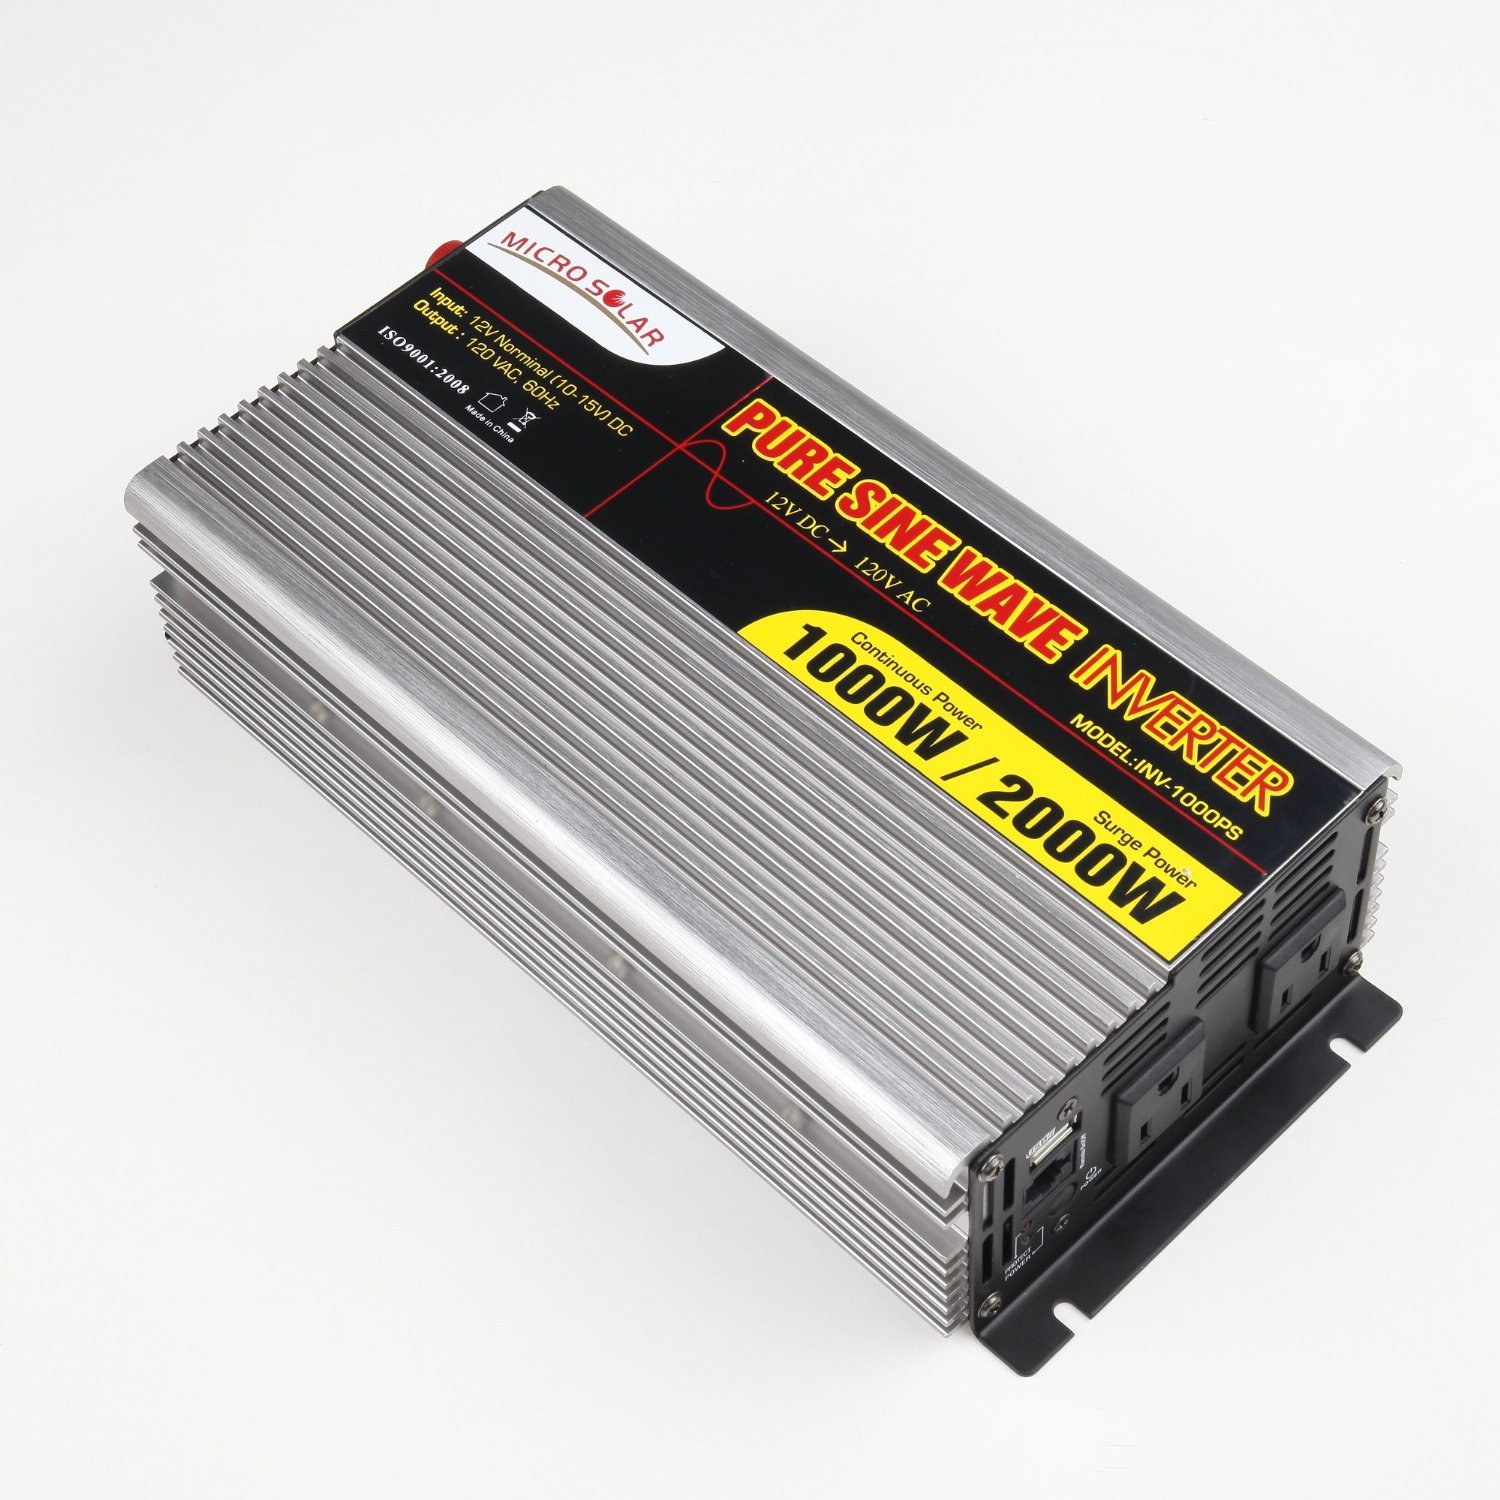 Literature review on power inverter. write my essay free